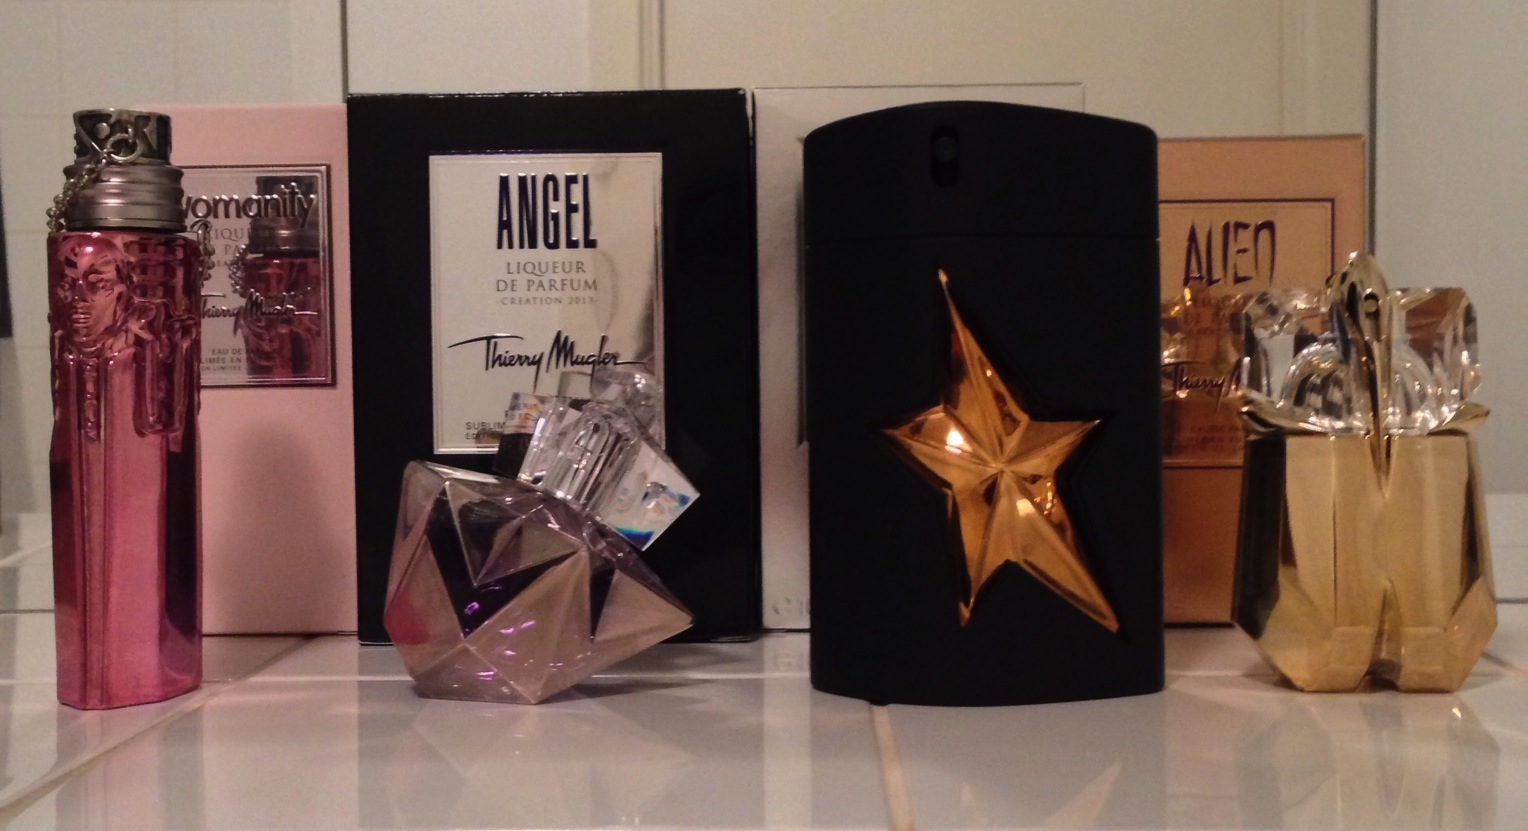 Womanity liqueur de parfum the candy perfume boy for Thierry mugler a travers le miroir